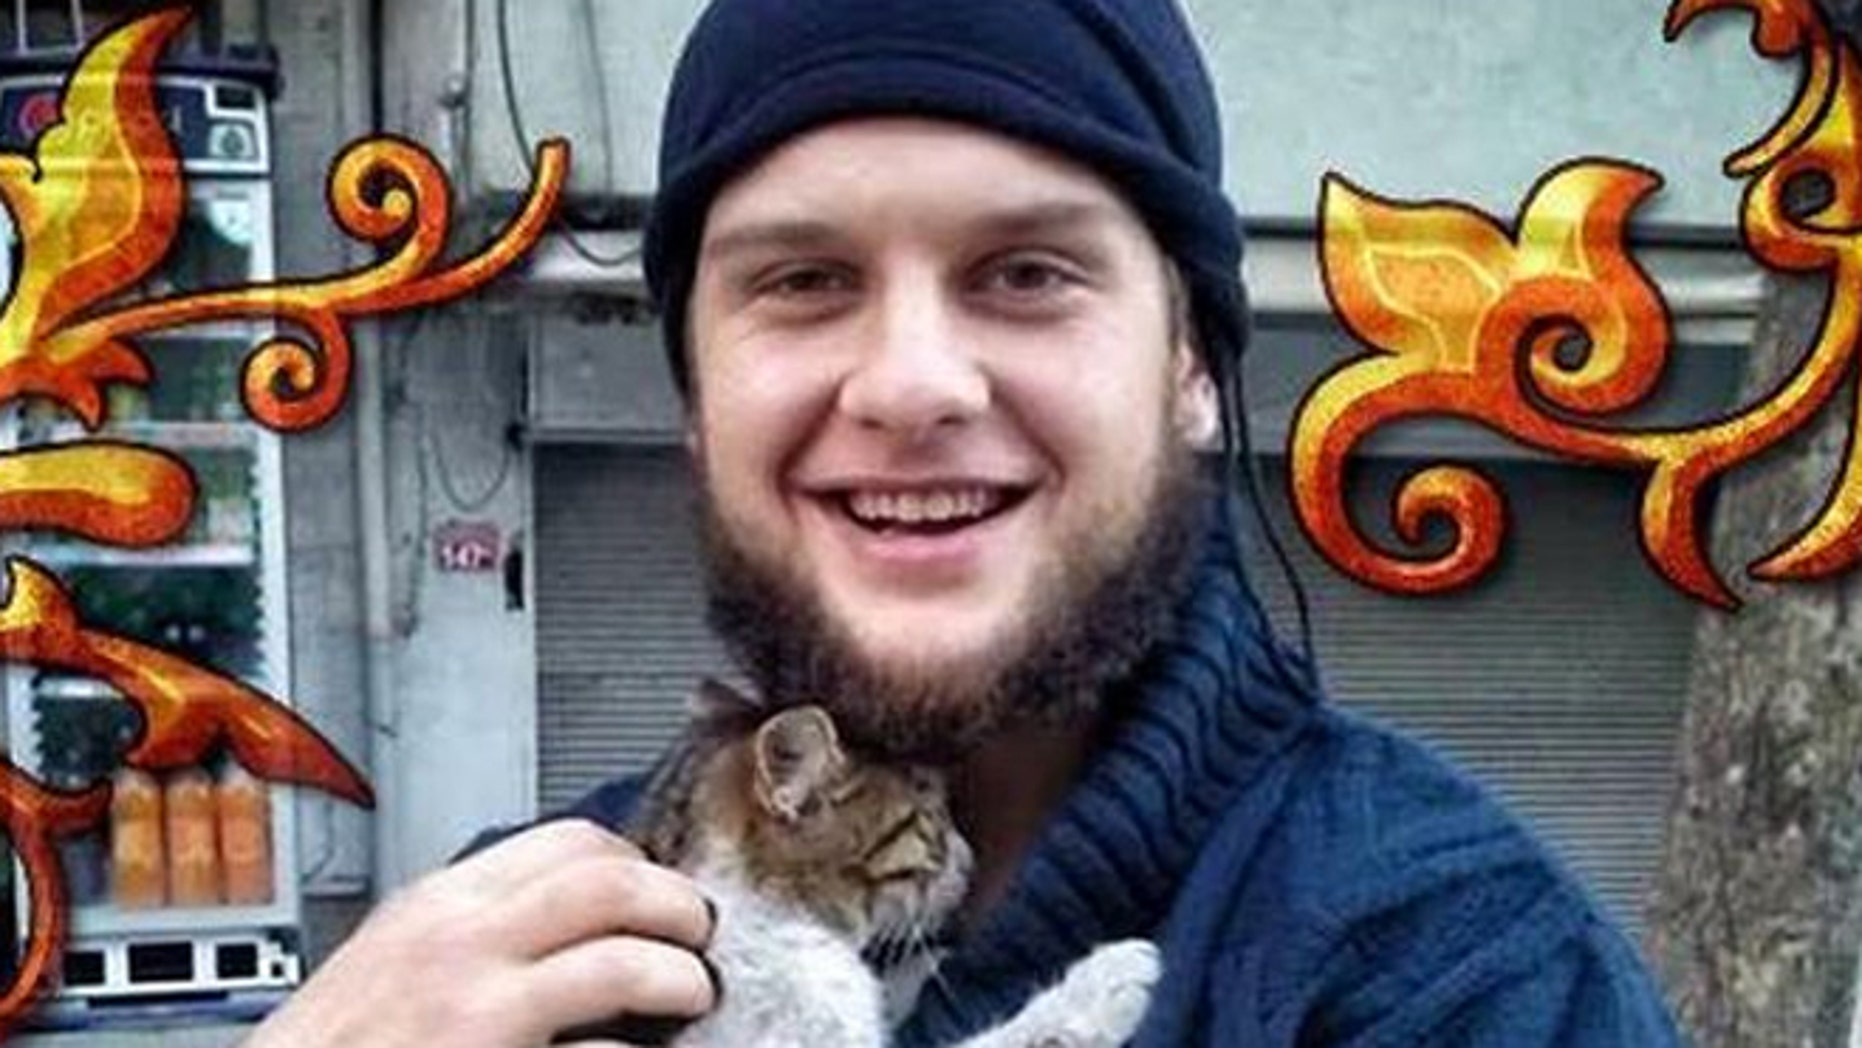 A widely circulated photo purportedly shows the American suicide bomber in Syria.